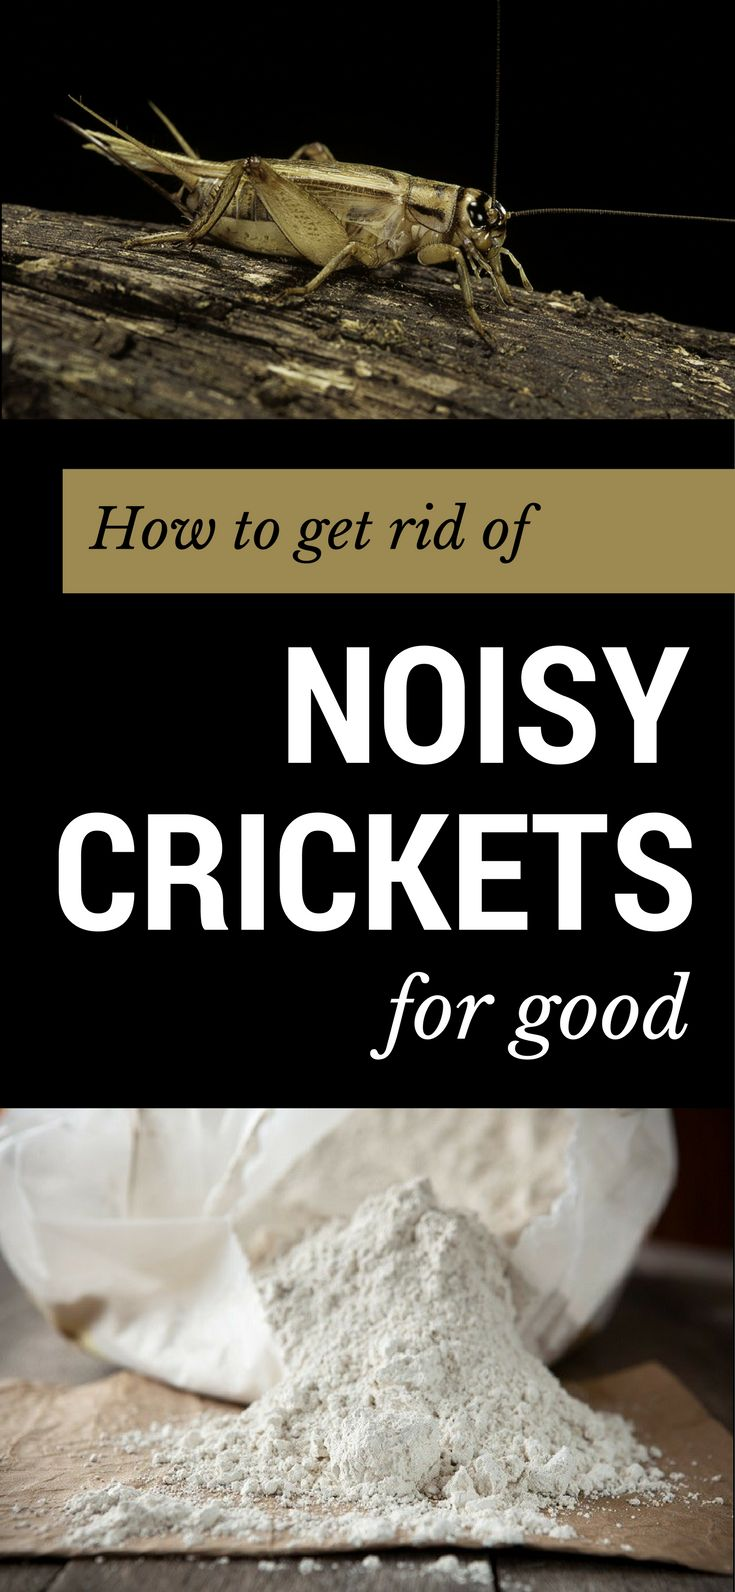 These are the best methods to get rid of noisy crickets for good.